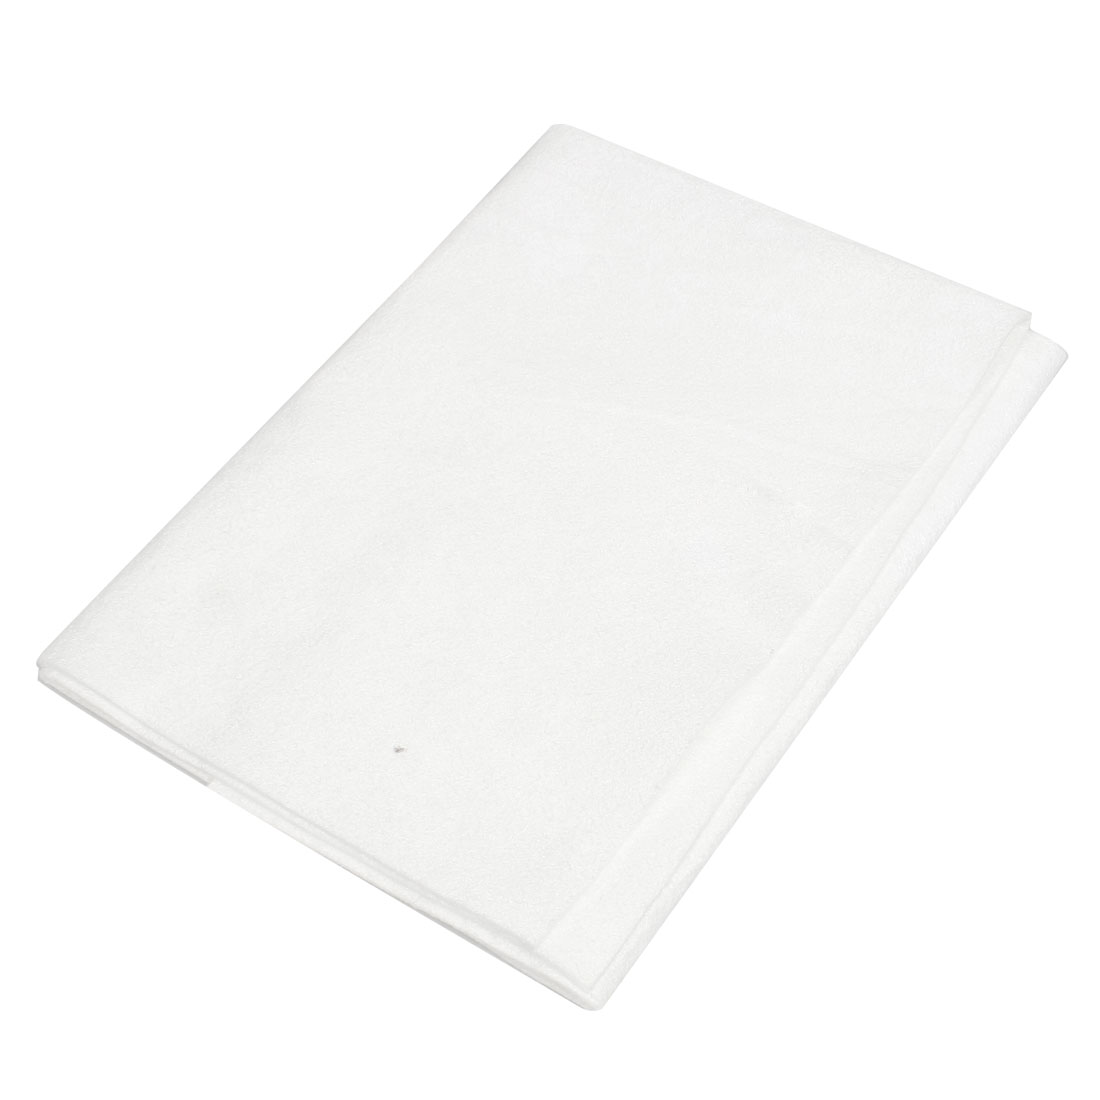 White Synthetic Chamois Auto Car Cleaning Cham Towel 40cm x 40cm